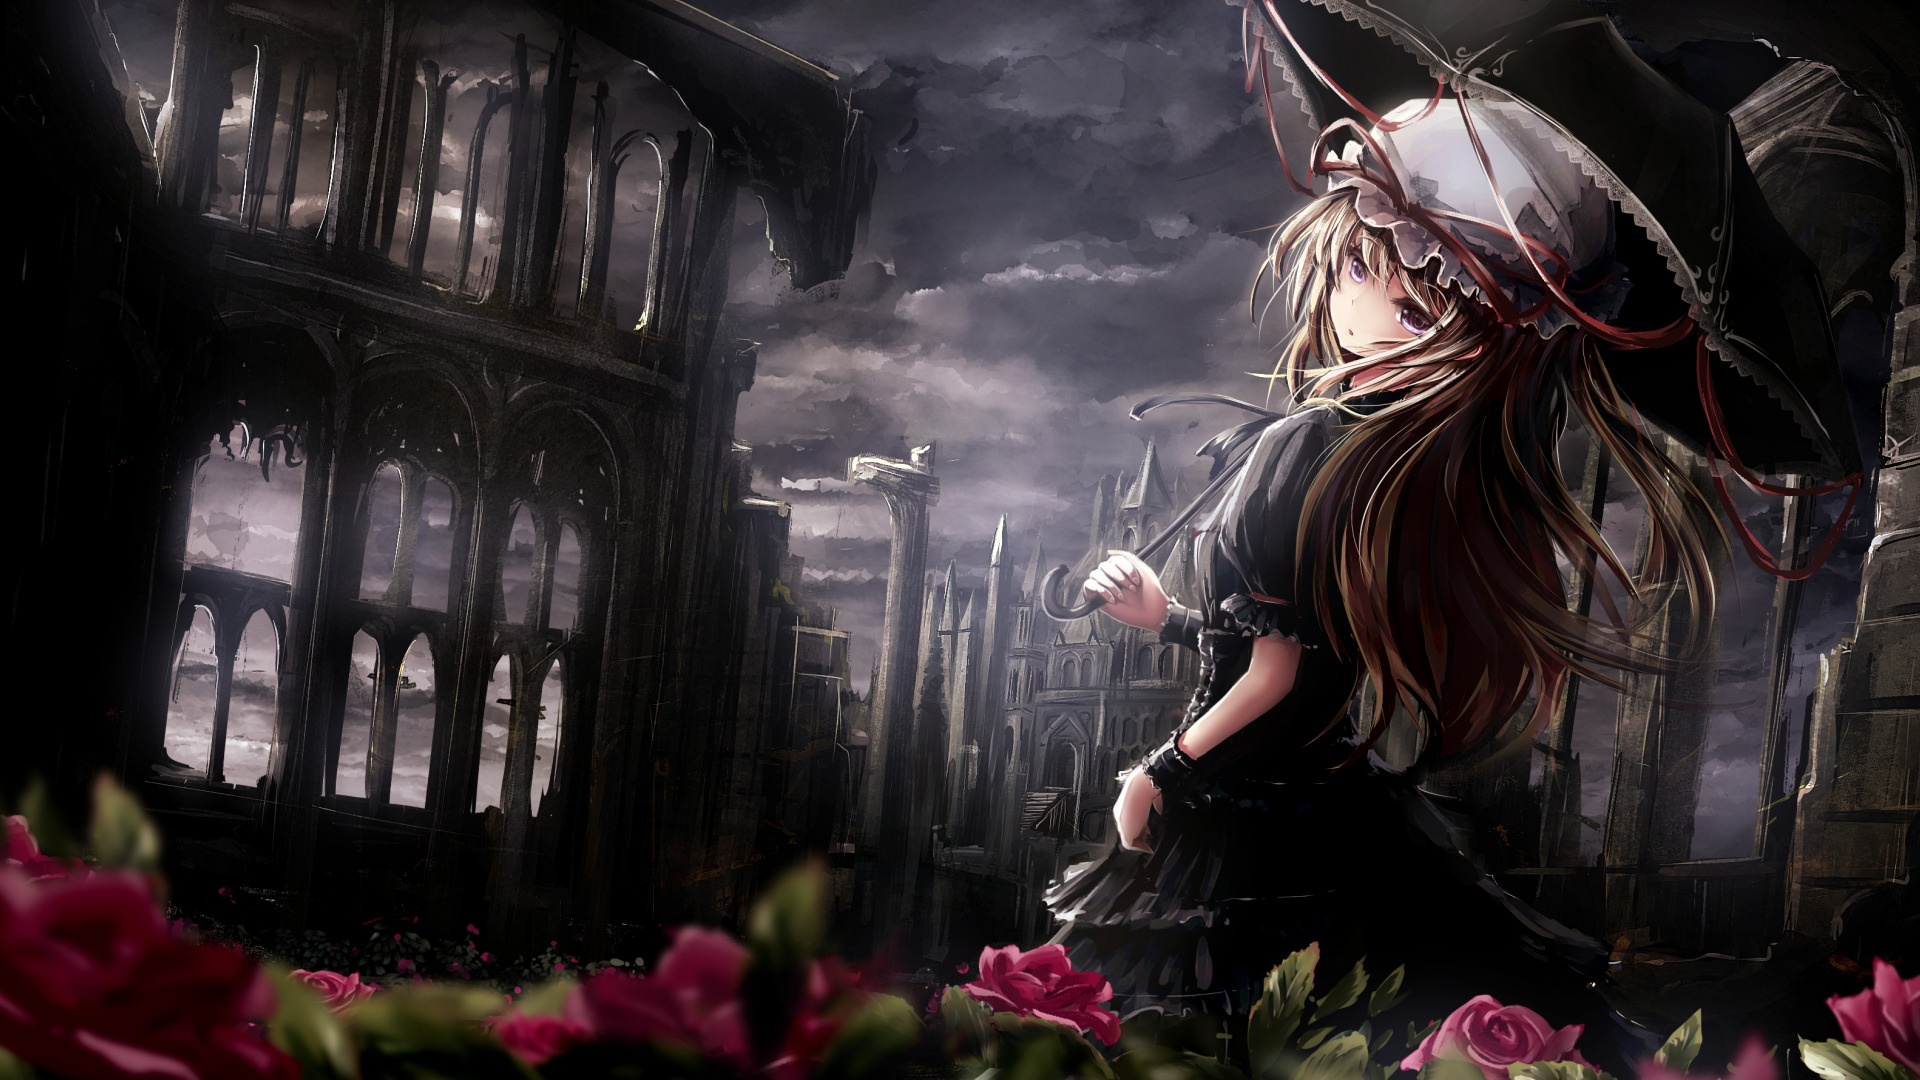 Anime Gothic Girl background picture